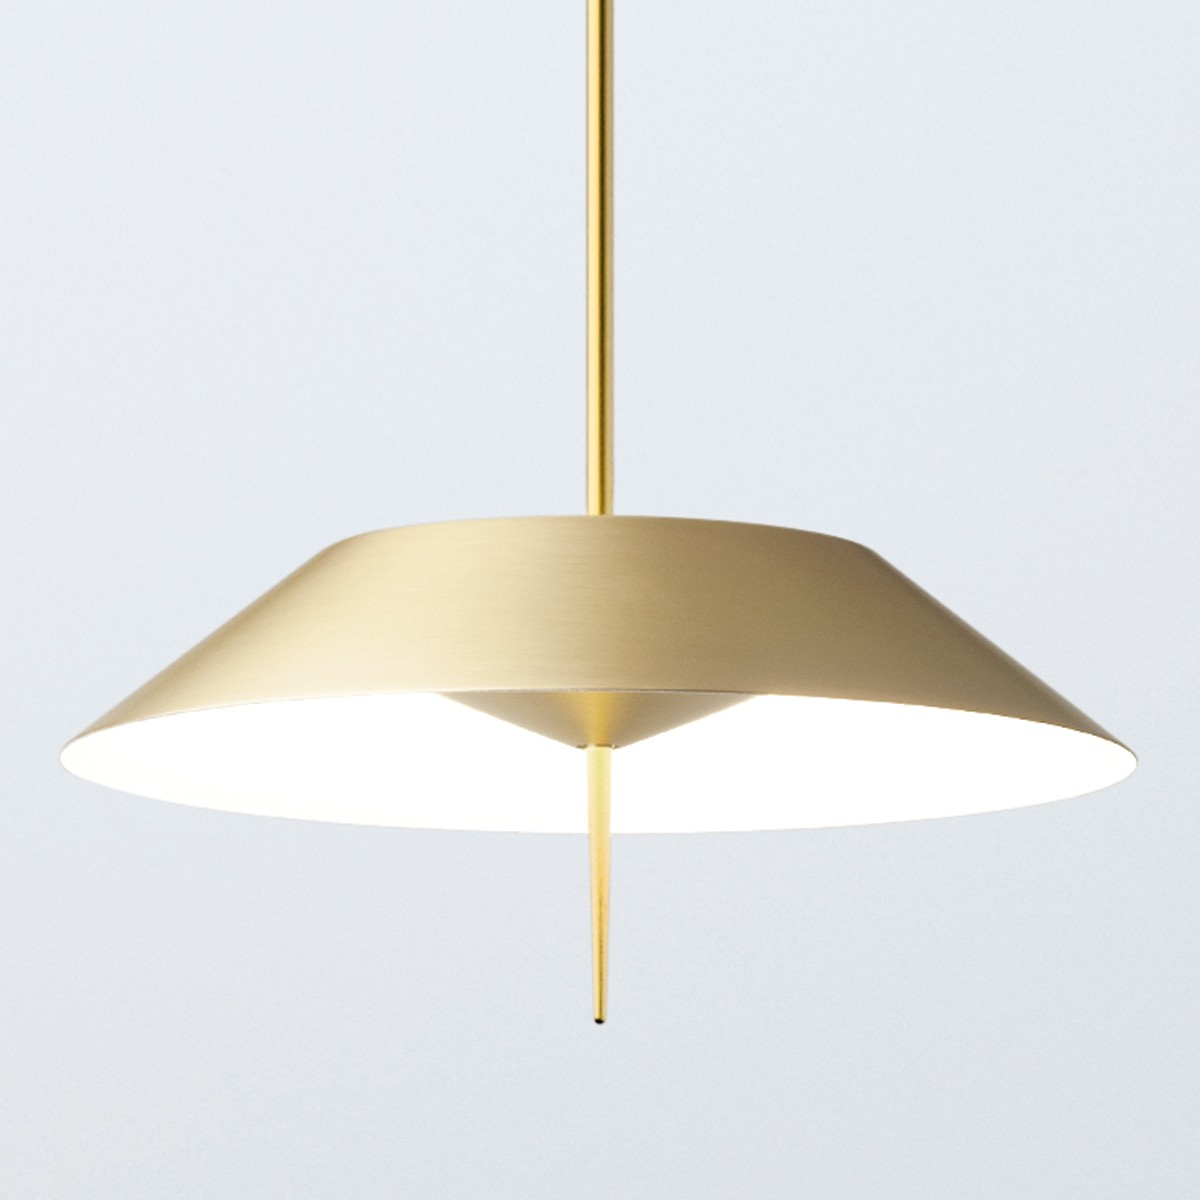 Vibia Mayfair 5525 Pendelleuchte, Gold satiniert matt